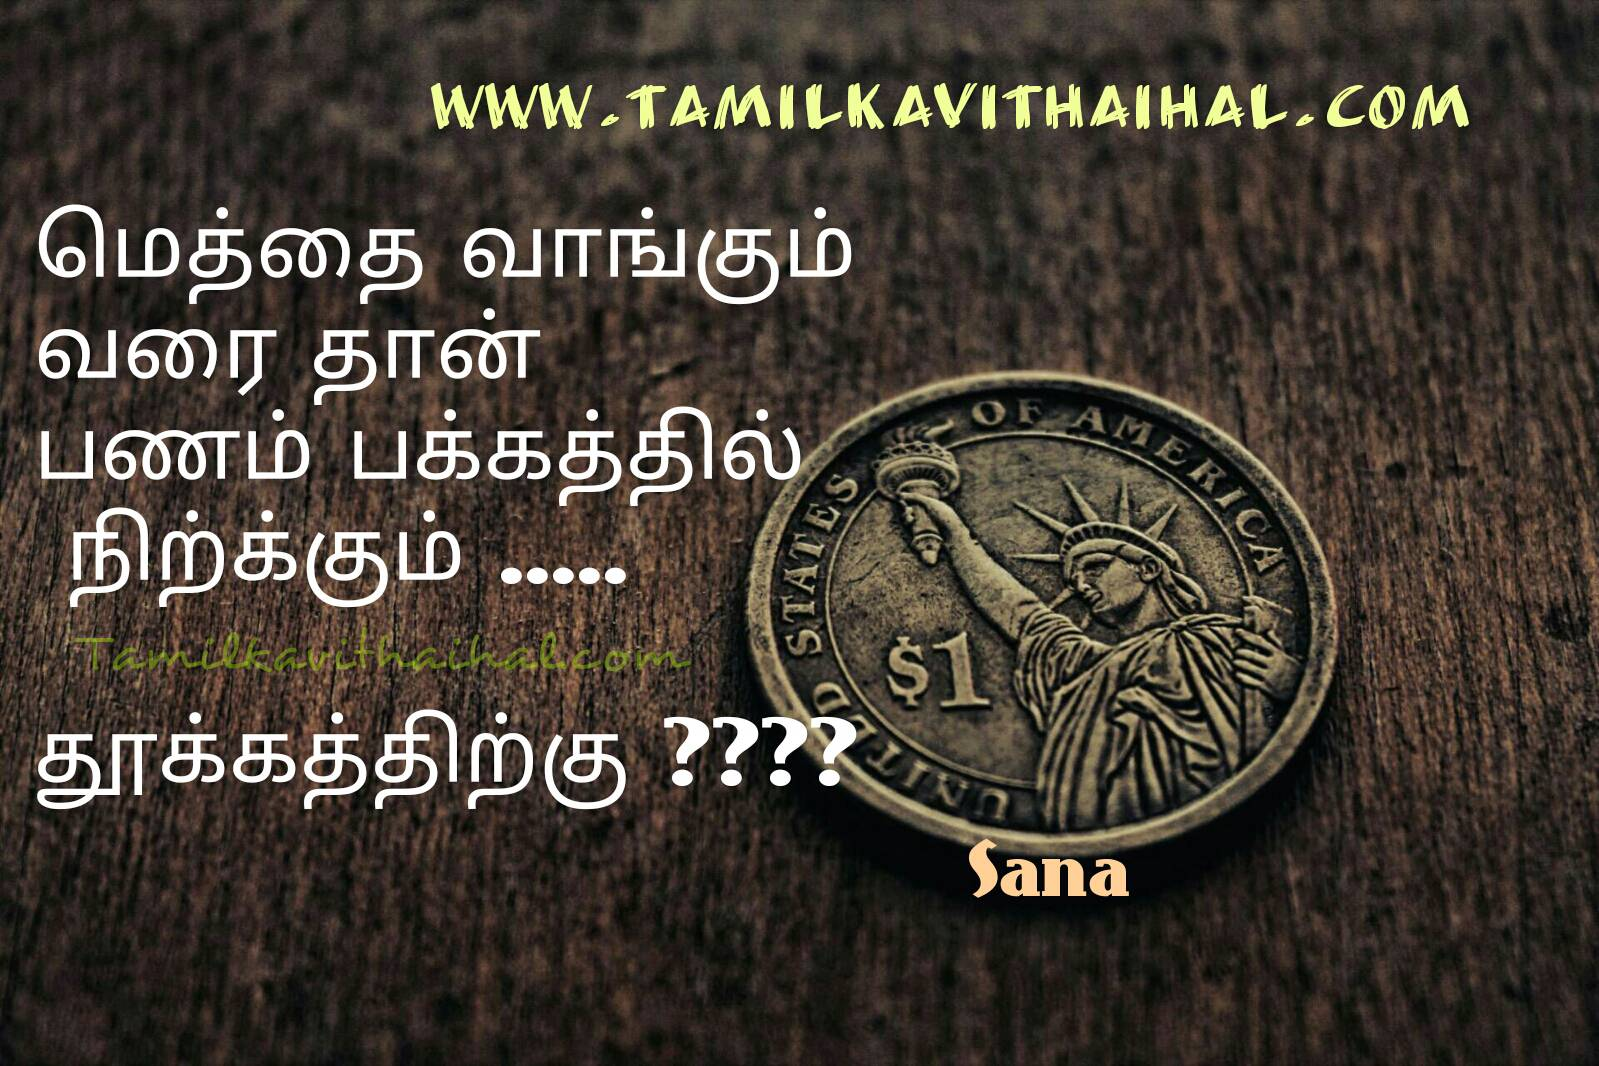 Beautiful tamil thathuvam in our life panam money future valkkai sana quotes images